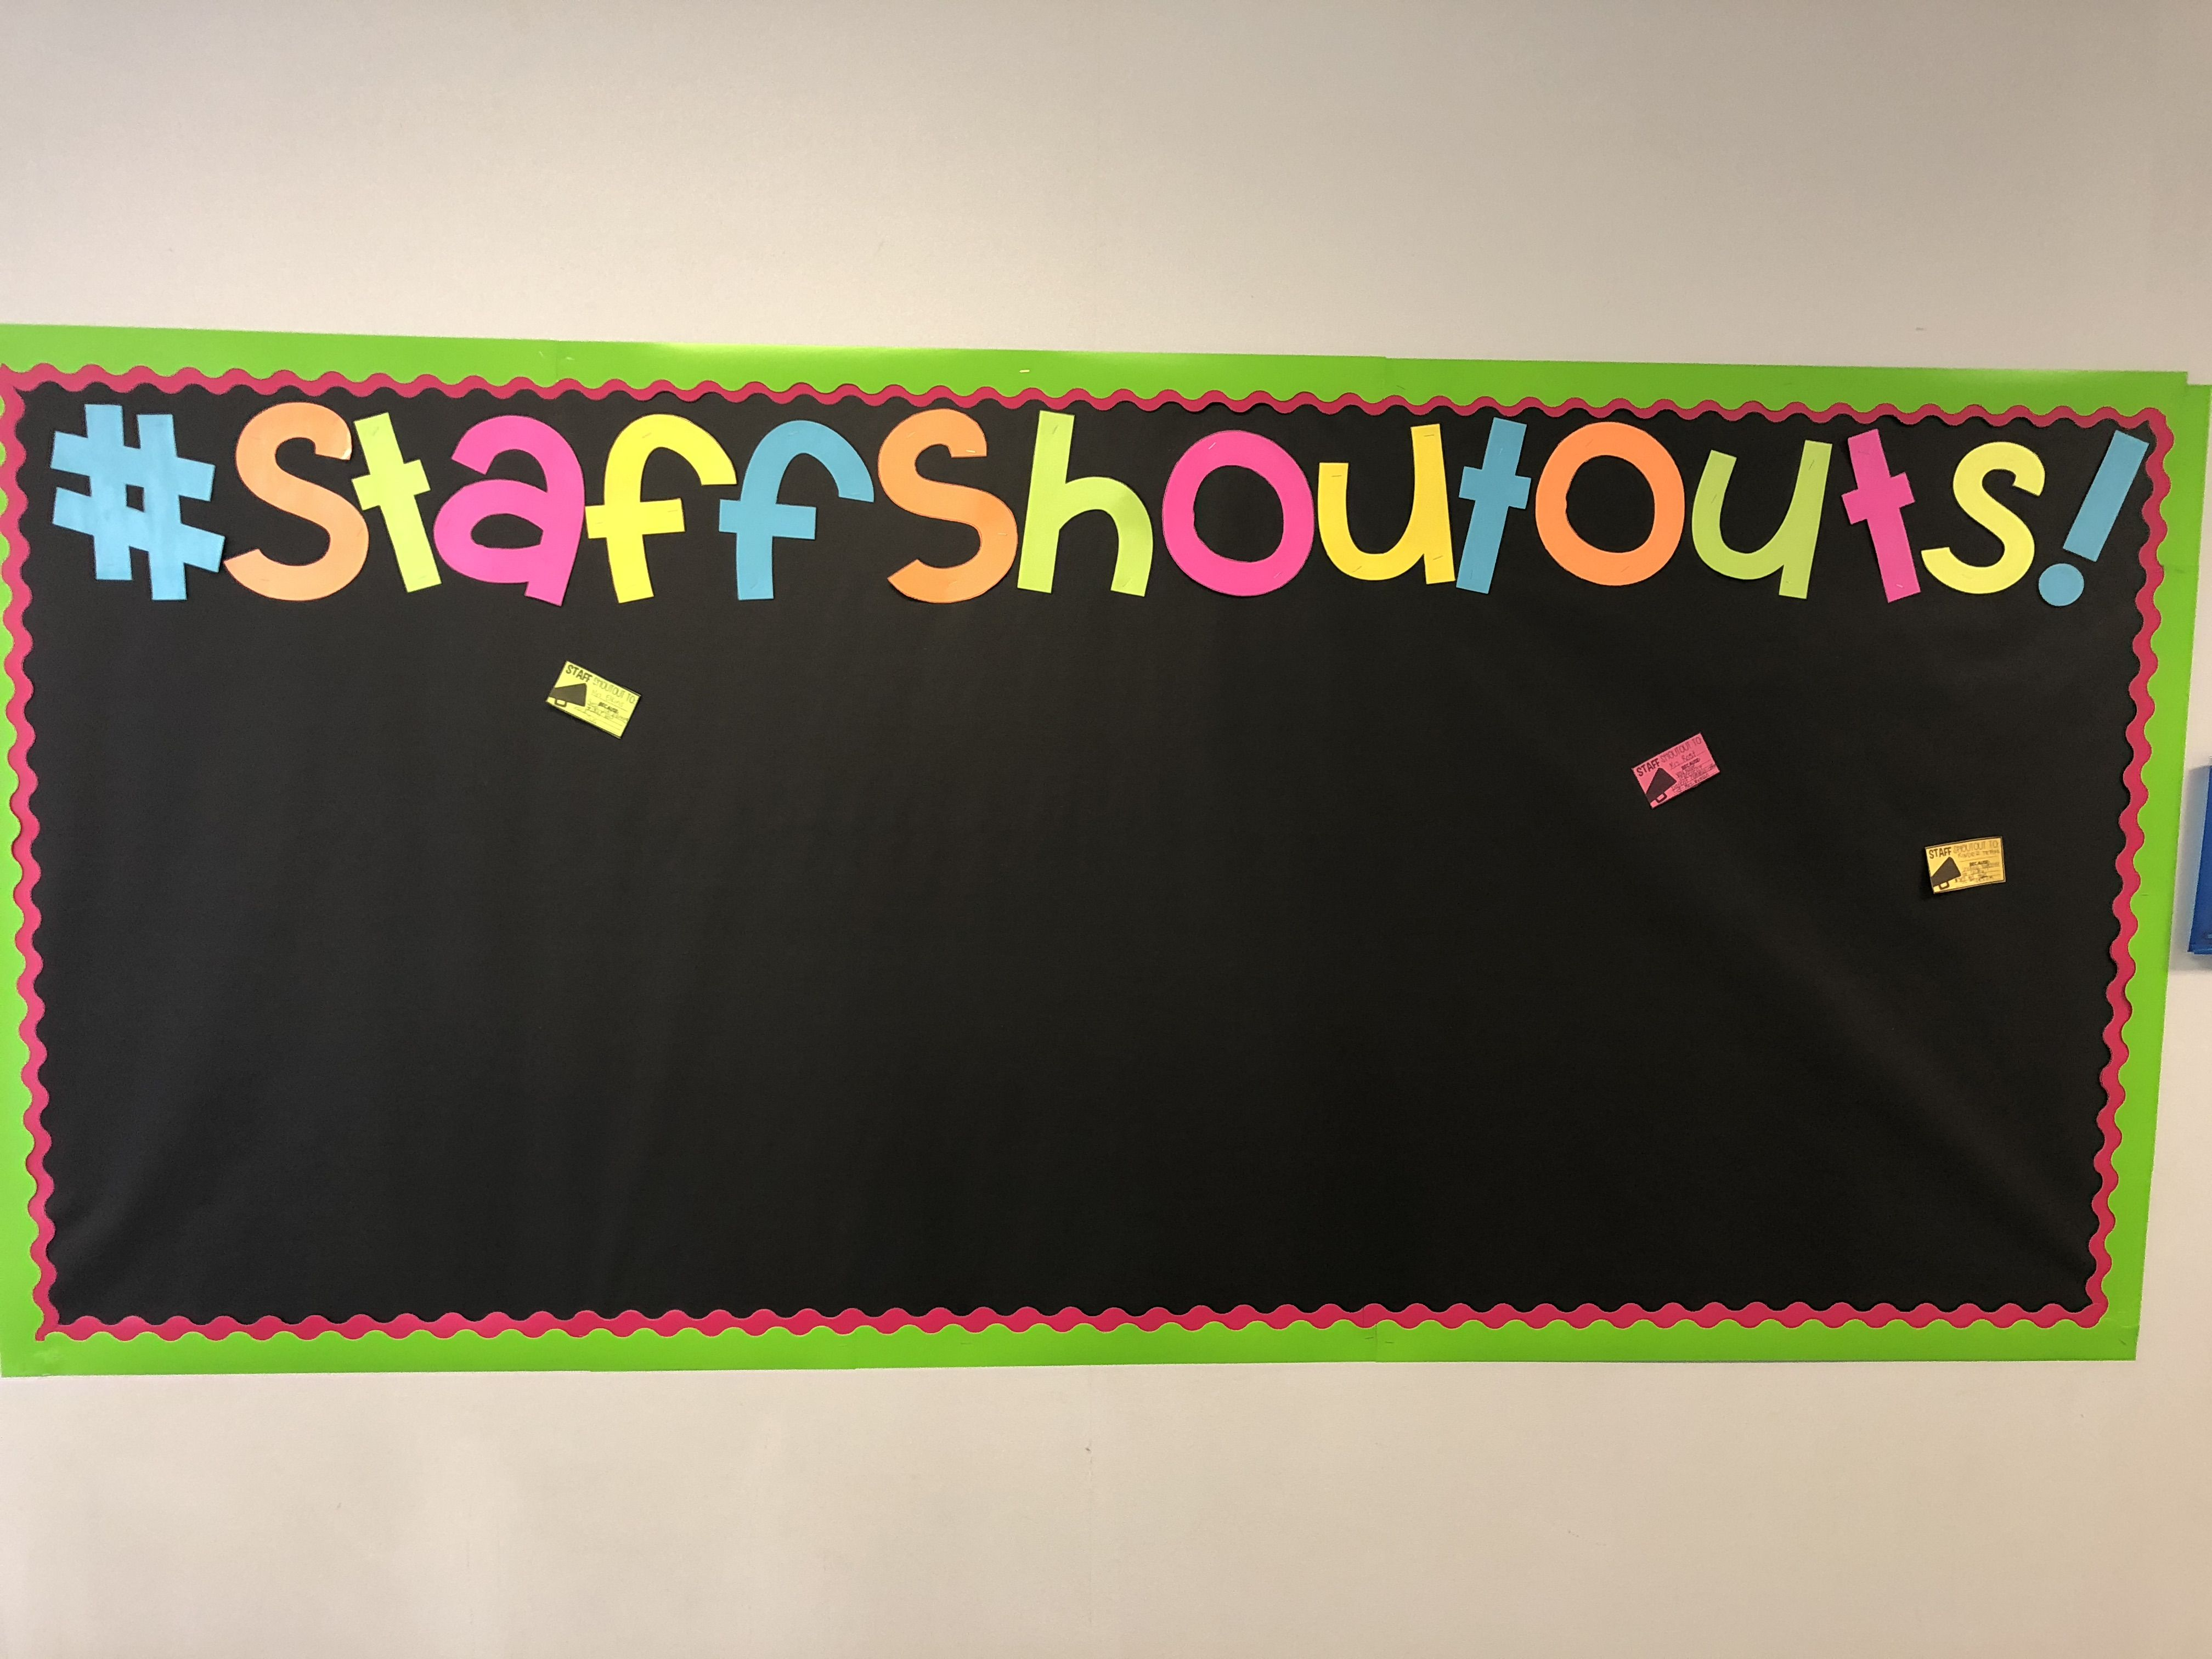 Staff Shout Outs Board To Focus On All The Positive Things Our School Staff Does Employee Recognition Board Employee Appreciation Board Teacher Shout Out Board